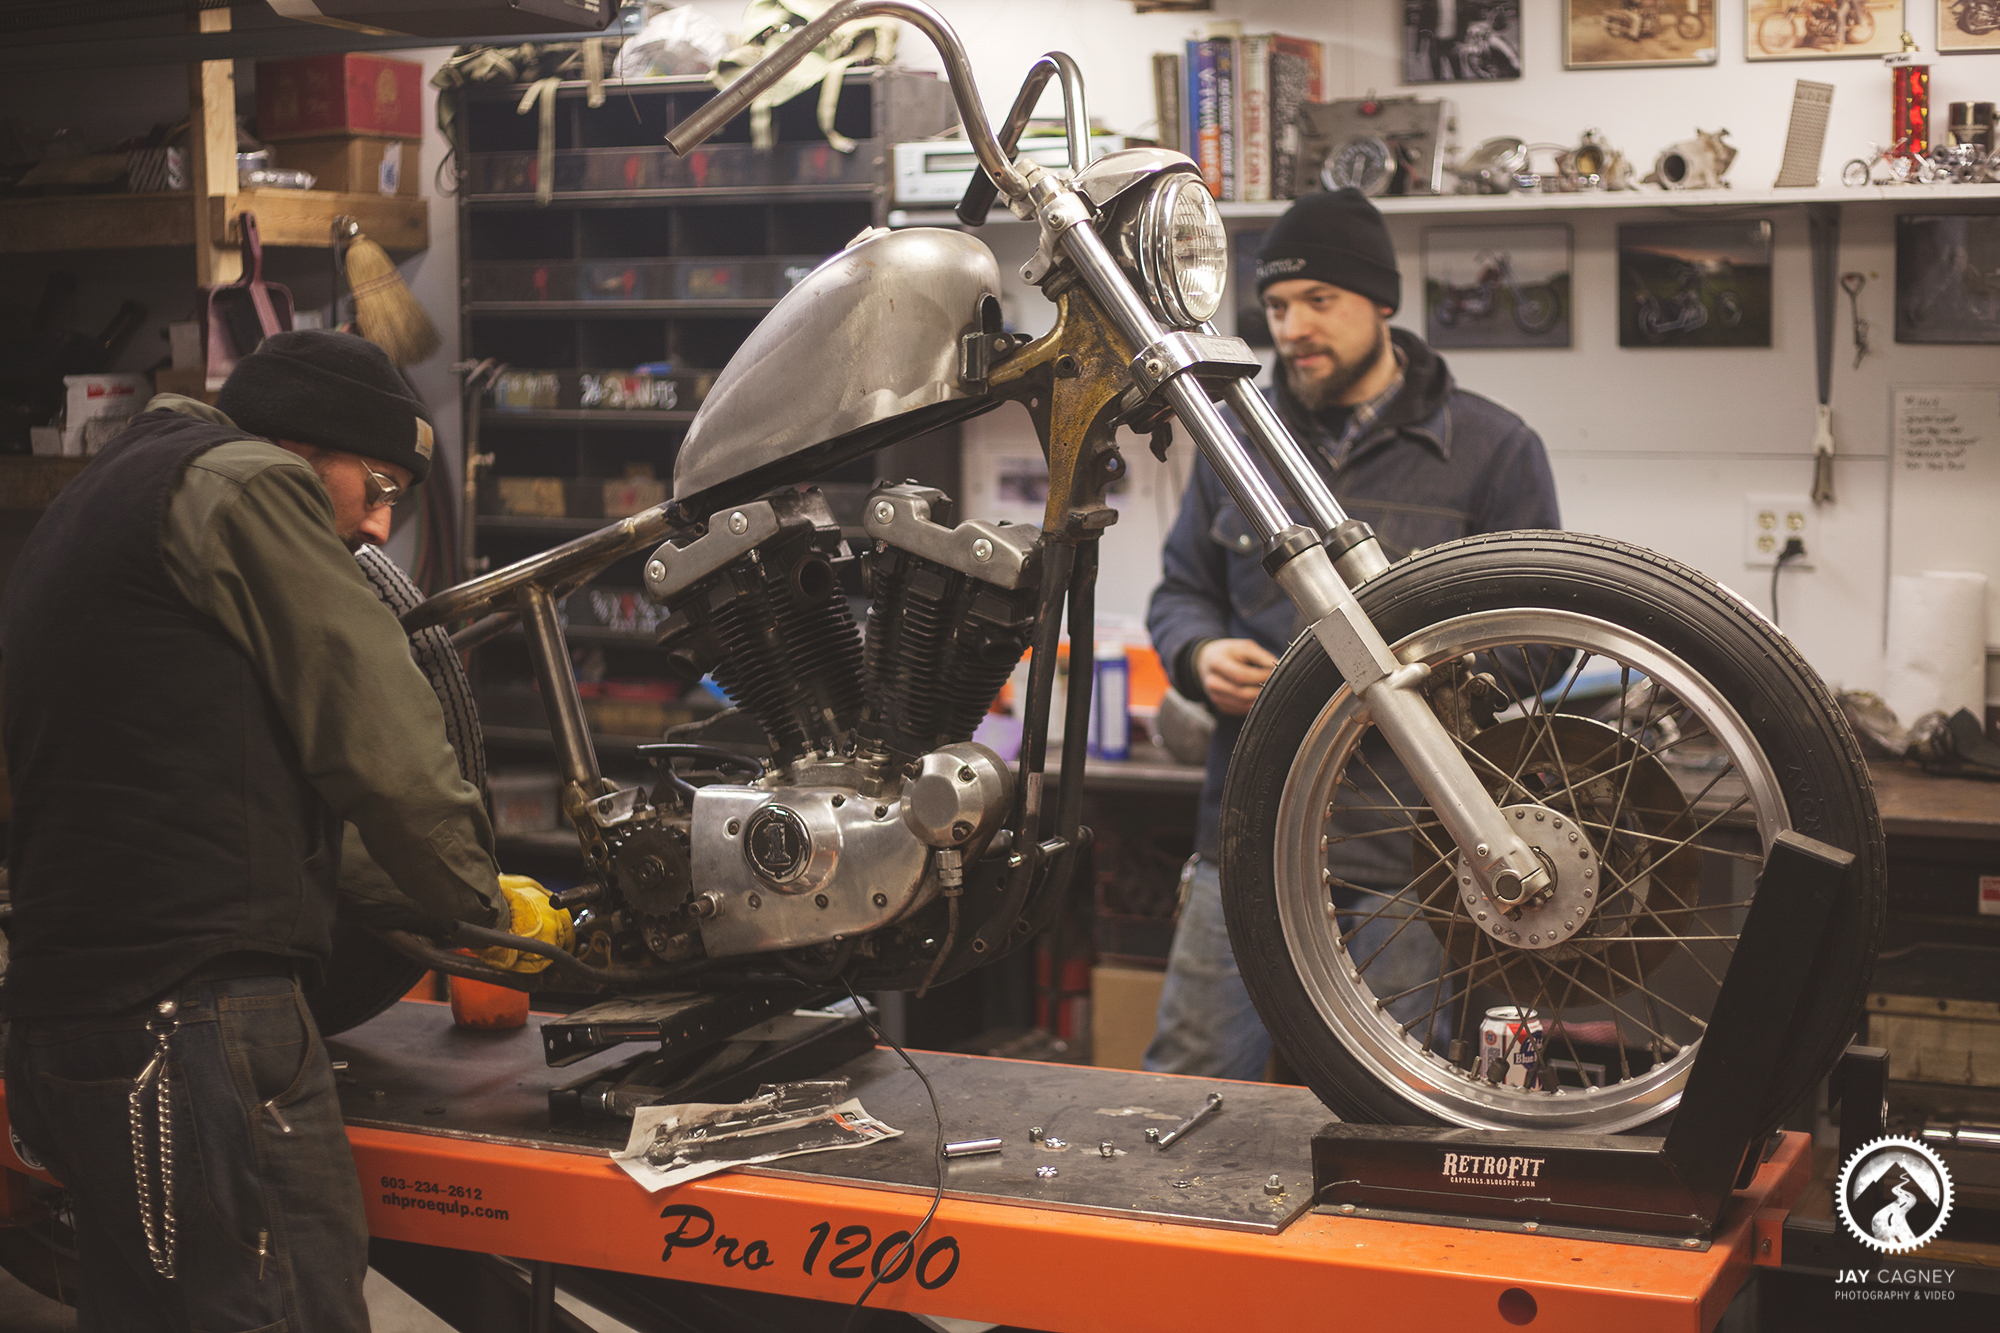 About Retrofit Cycle works - RetroFit started as a blog where Cal posted his father's old photos of motorcycles and adventures from back in the day. Over time, the blog evolved into a place to capture the motorcycle projects that Cal was working on, with the knowledge he gained from his dad. Cal and Ben met through Cal's dad, Joe, back in 2000 when Cal would come to the steel yard to help out on Saturdays. They found they shared a common interest in motorcycles, and started helping each other out with their projects. People started to come to them for help with their bikes, and side work was coming in. The Retrofit shop really came together after building two giveaway bikes for the Strange Days event. Since then, RetroFit has worked on everything from cafe racers, to 70's choppers. Whatever you can dream up, they can make happen.